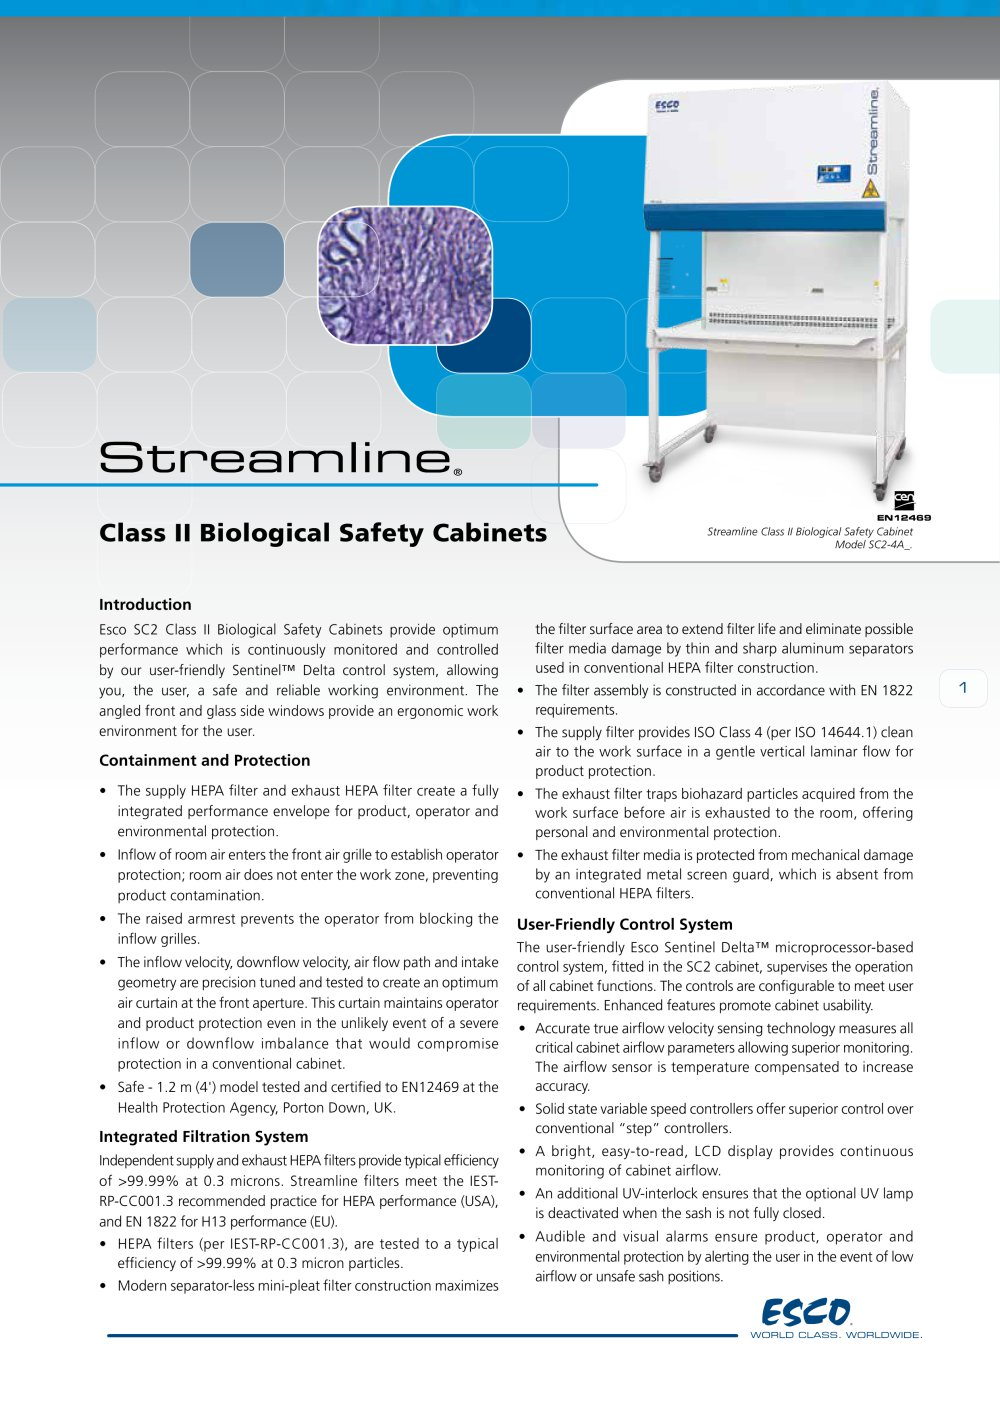 Class Ii Type A2 Biosafety Cabinet Streamline Class Ii Biological Safety Cabinets Esco Pdf